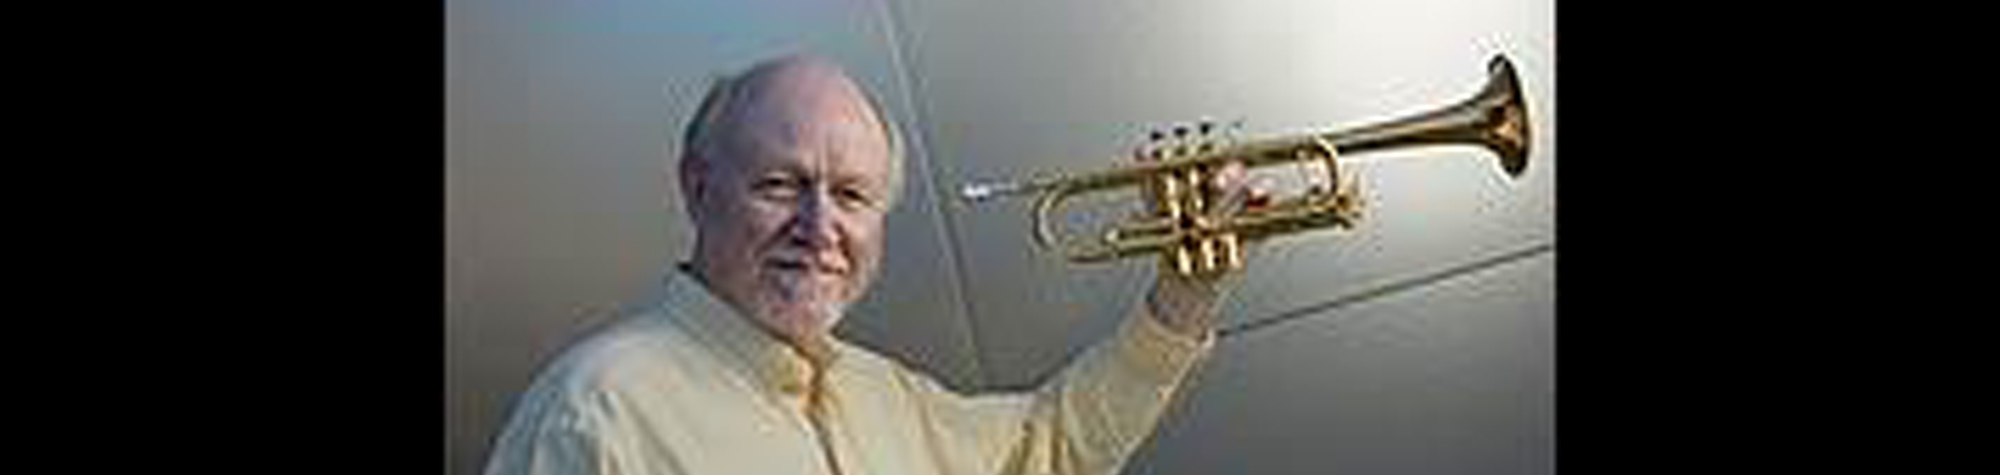 Boyde Hood Trumpet Interview – The Other Side of the Bell #89